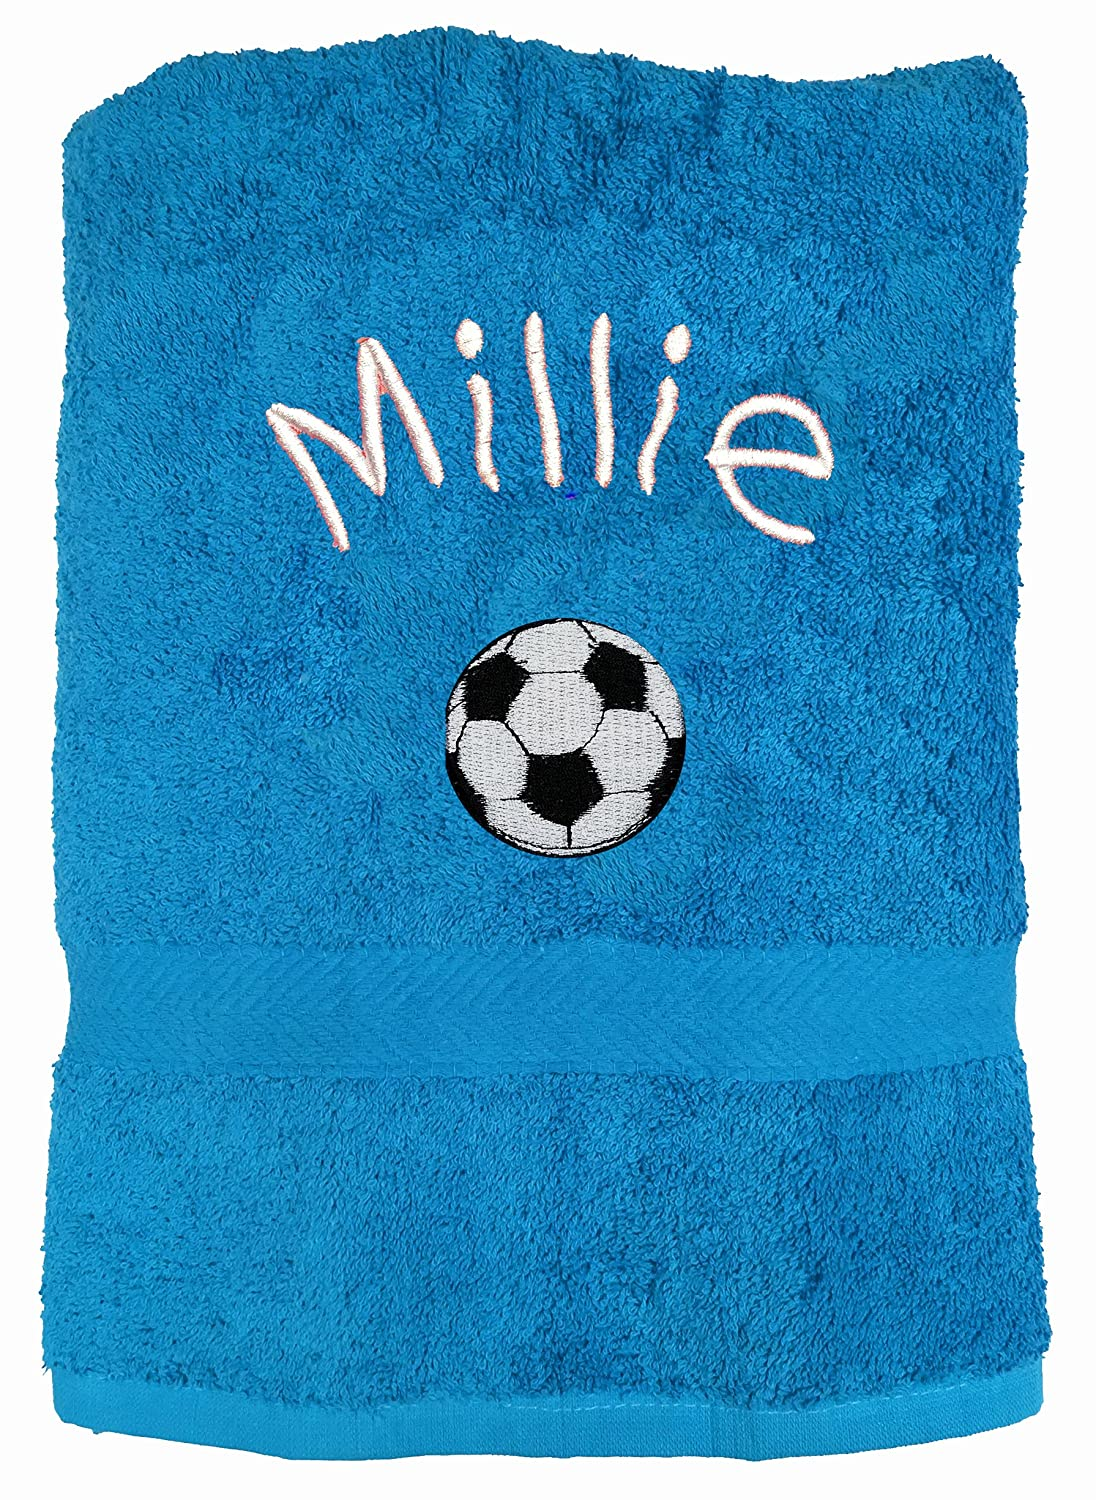 Any Name Beautifully Embroidered On A Luxury 550gsm Towel Perfect For Holiday Spoilt Rotten Kids Football Lime Personalised Bath Towel Swimming or Bathing.